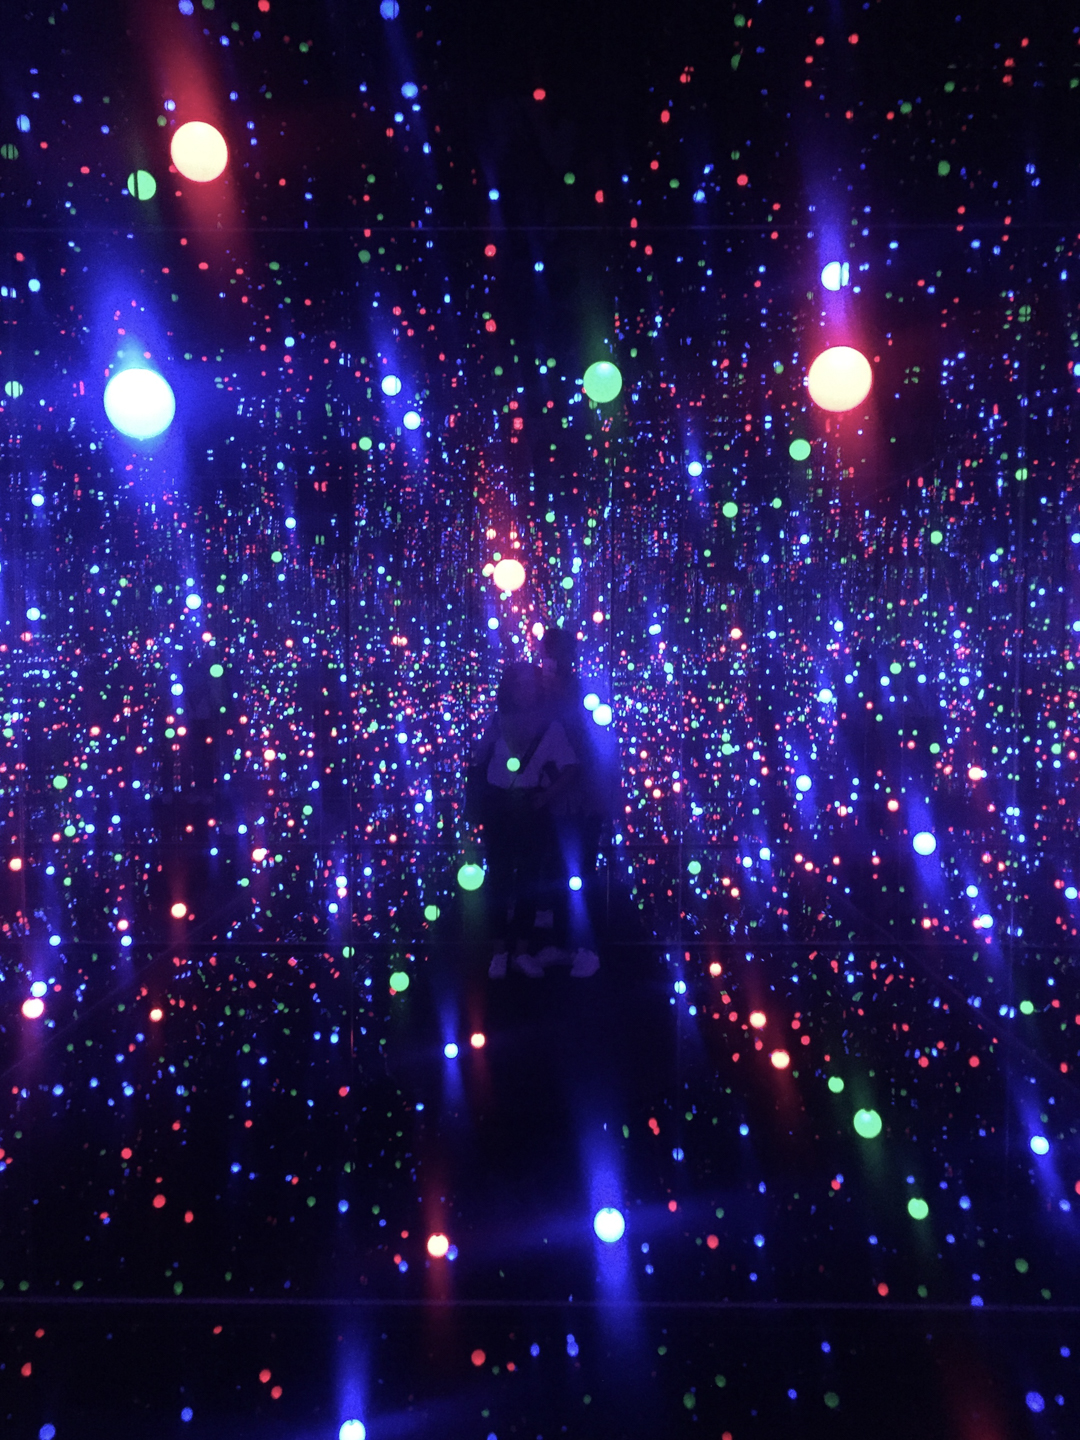 installation by Yayoi Kusama, the polka dot queen. more exhibitions by Kusama   here .